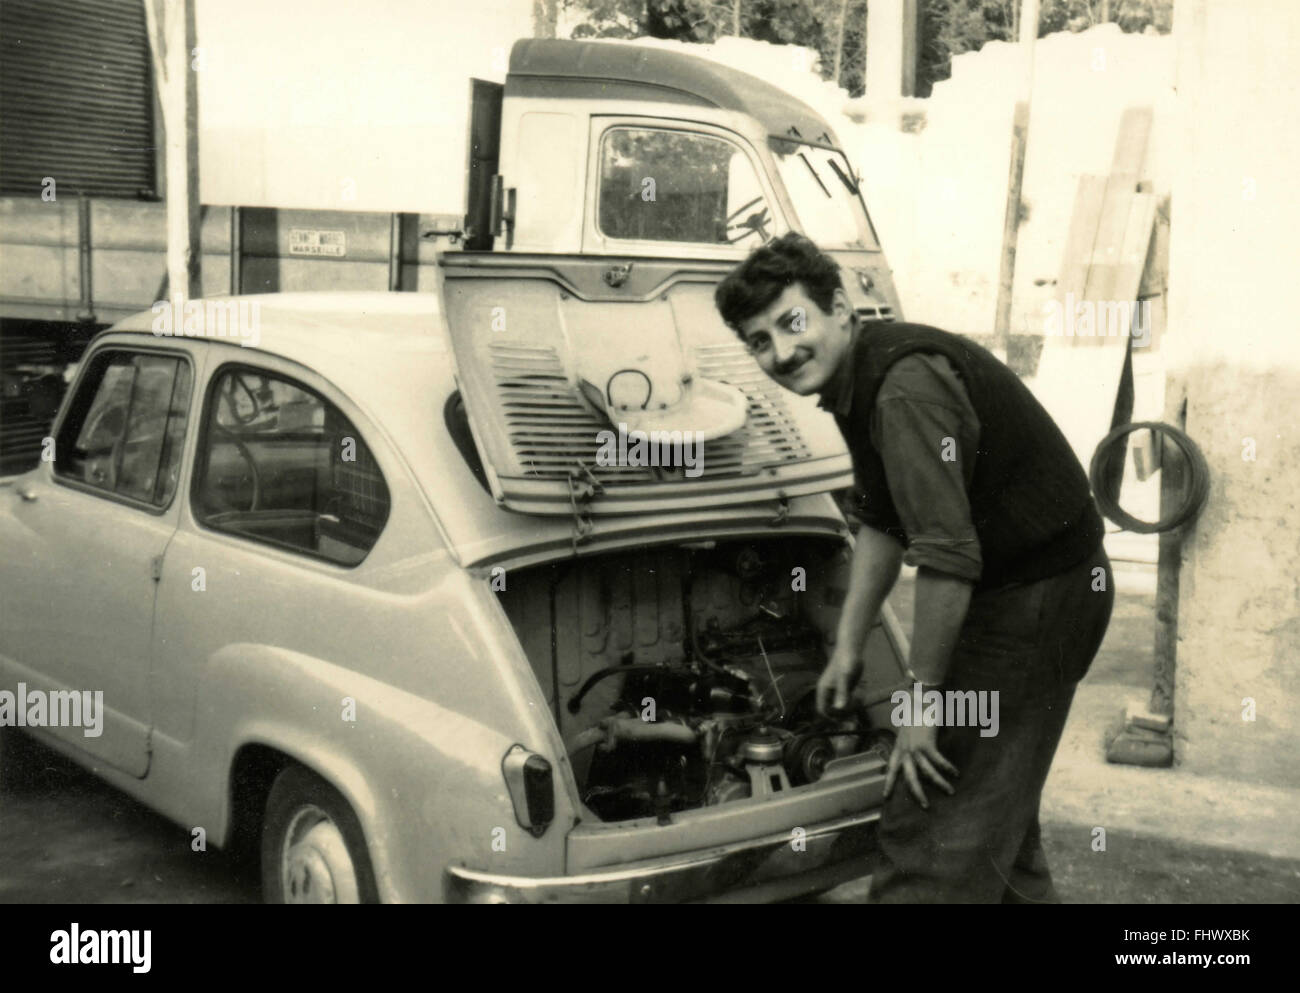 Adjusting the FIAT 600 fails, Italy - Stock Image